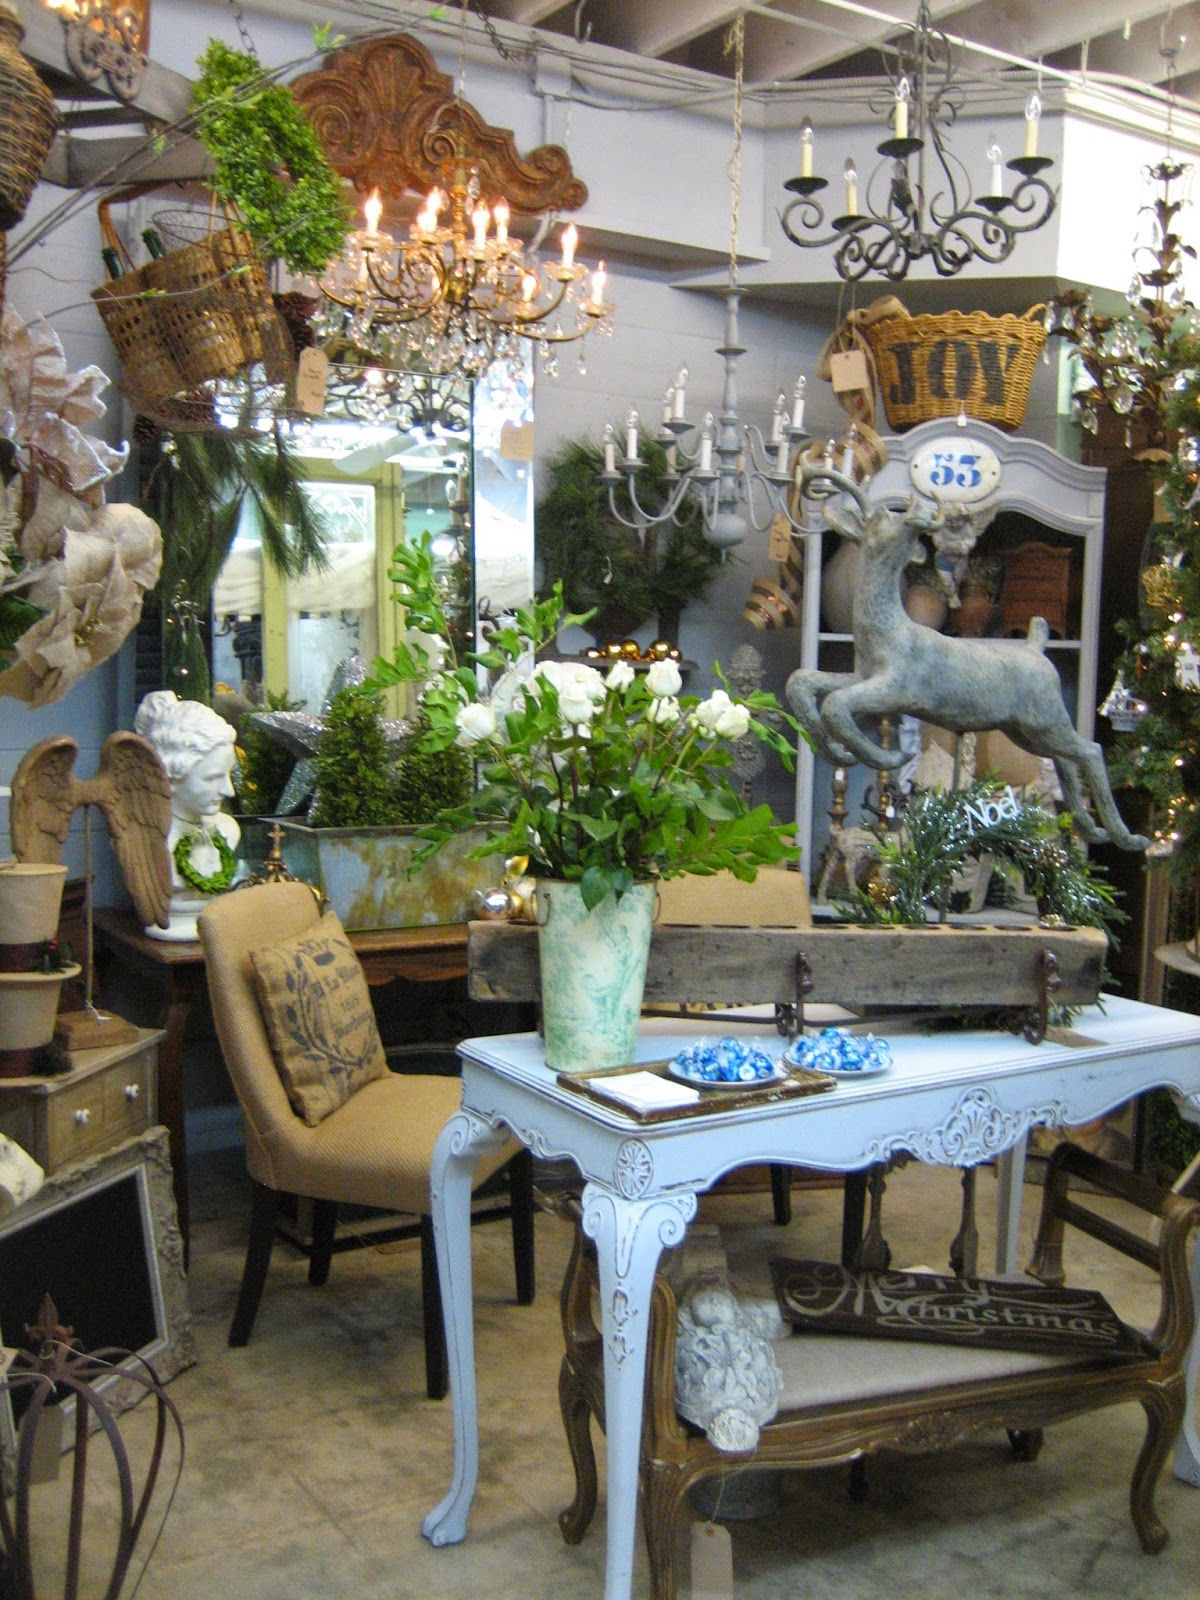 This upscale shop carries antique French furniture & garden decorations.  Located just 6 miles from downtown San Diego in the Ocean Beach Antique  District - Rue 27 Maison...Linda Ervin...Christmas At Vignettes Antiques